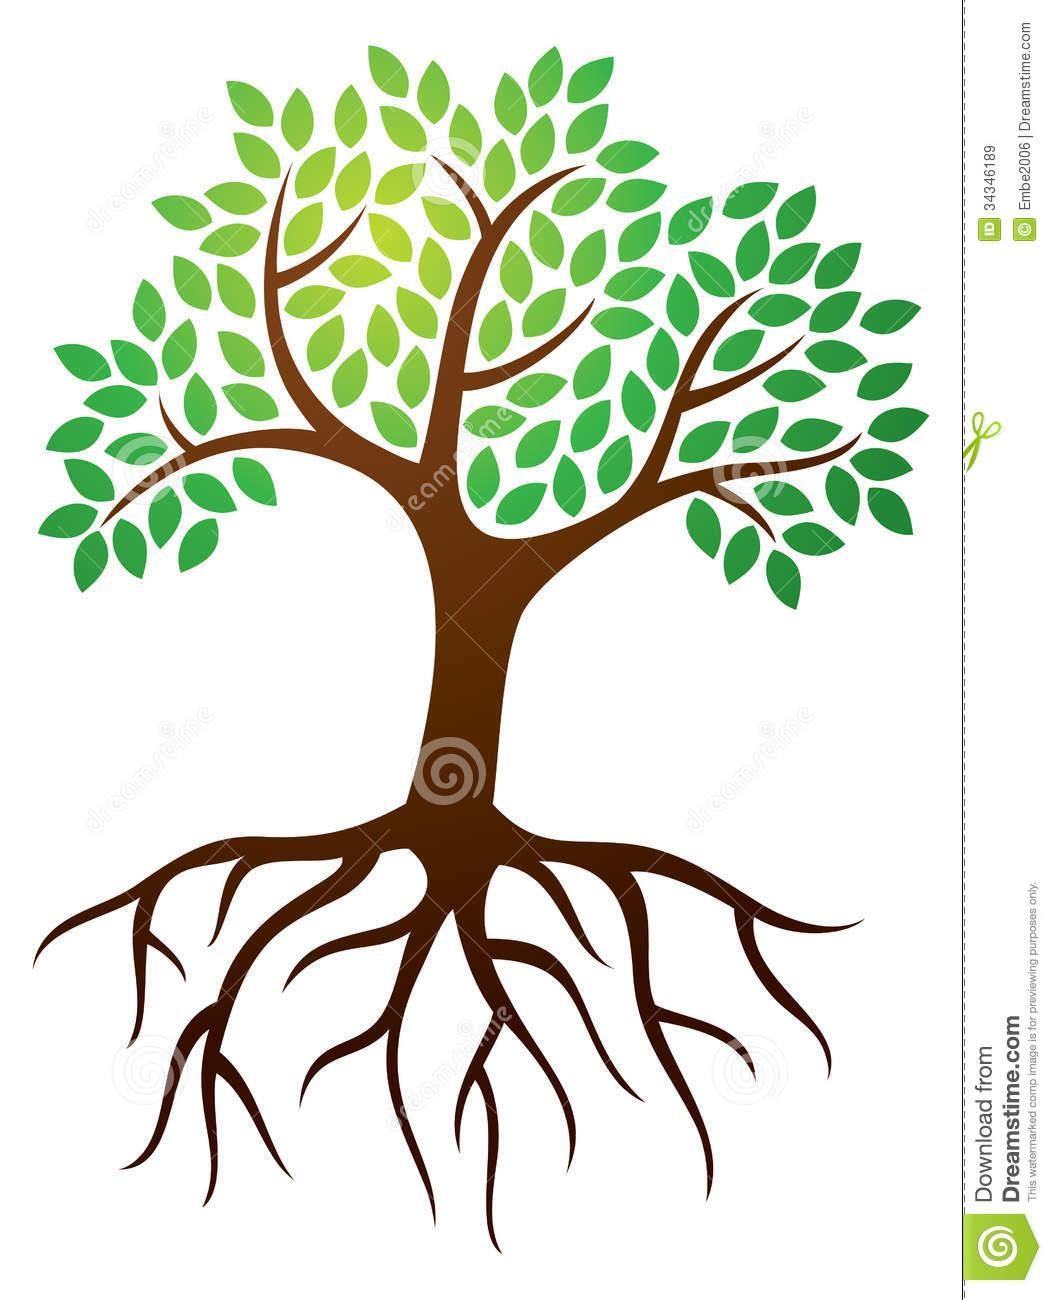 50 awesome family tree with roots clipart decora iuni centrale rh pinterest com au clipart tree with roots outline tree with roots clipart png